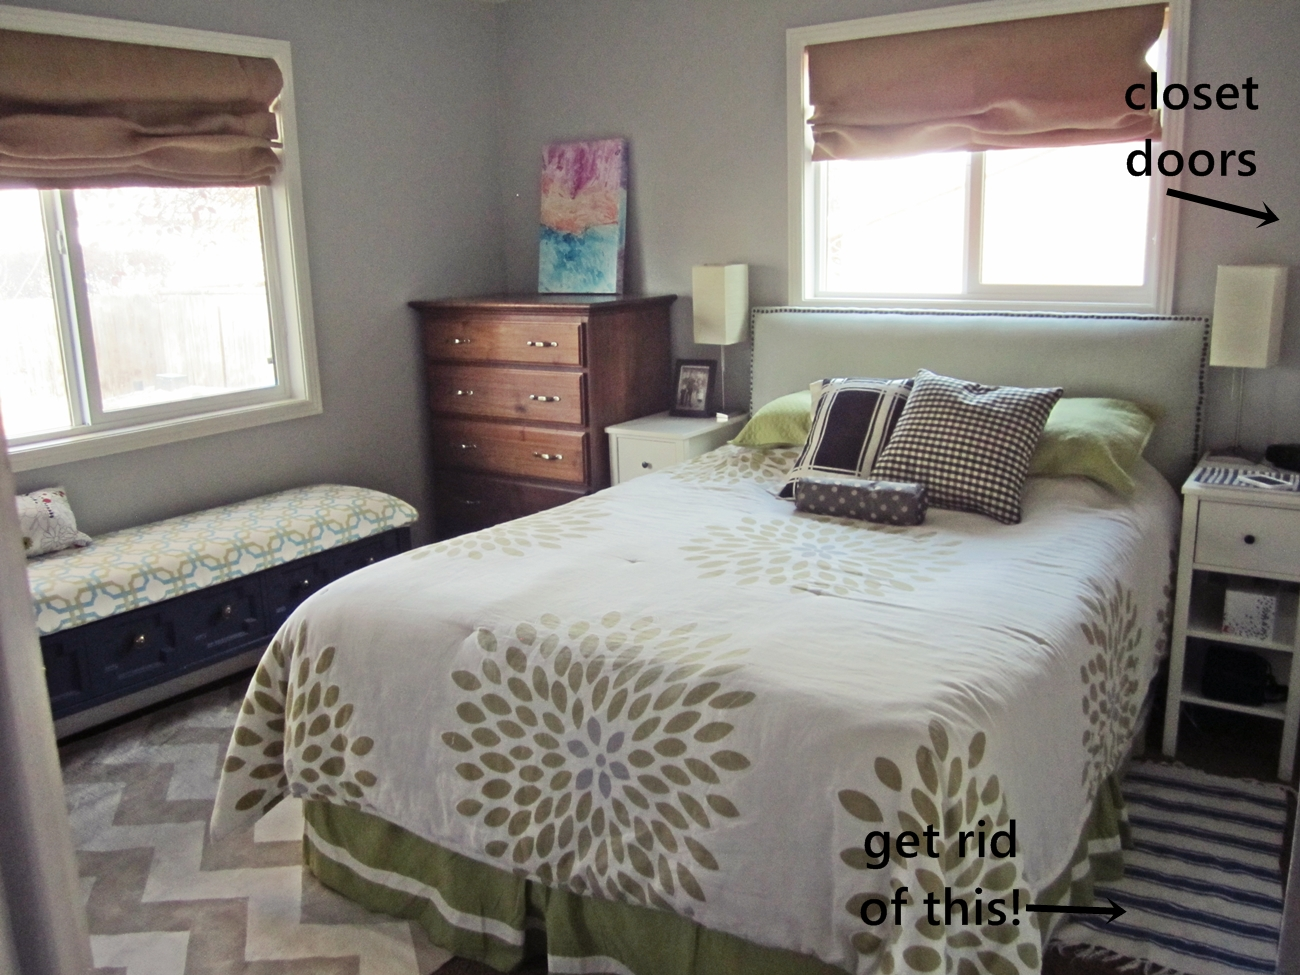 Bedroom Furniture Arrangement smartgirlstyle: master bedroom makeover: furniture arrangement